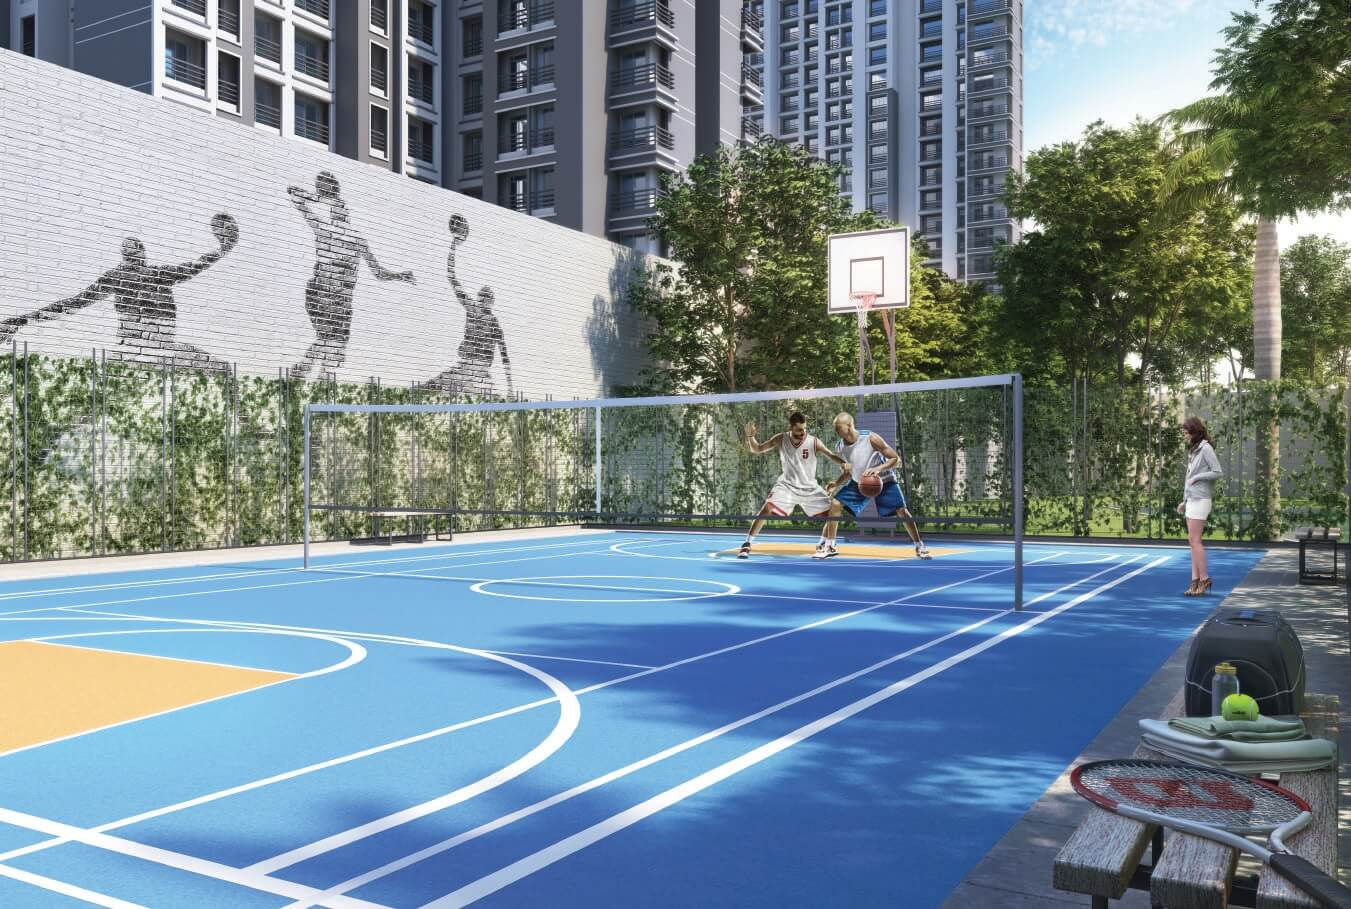 amenities-features-Picture-anantnath-and-forever-city-2624387